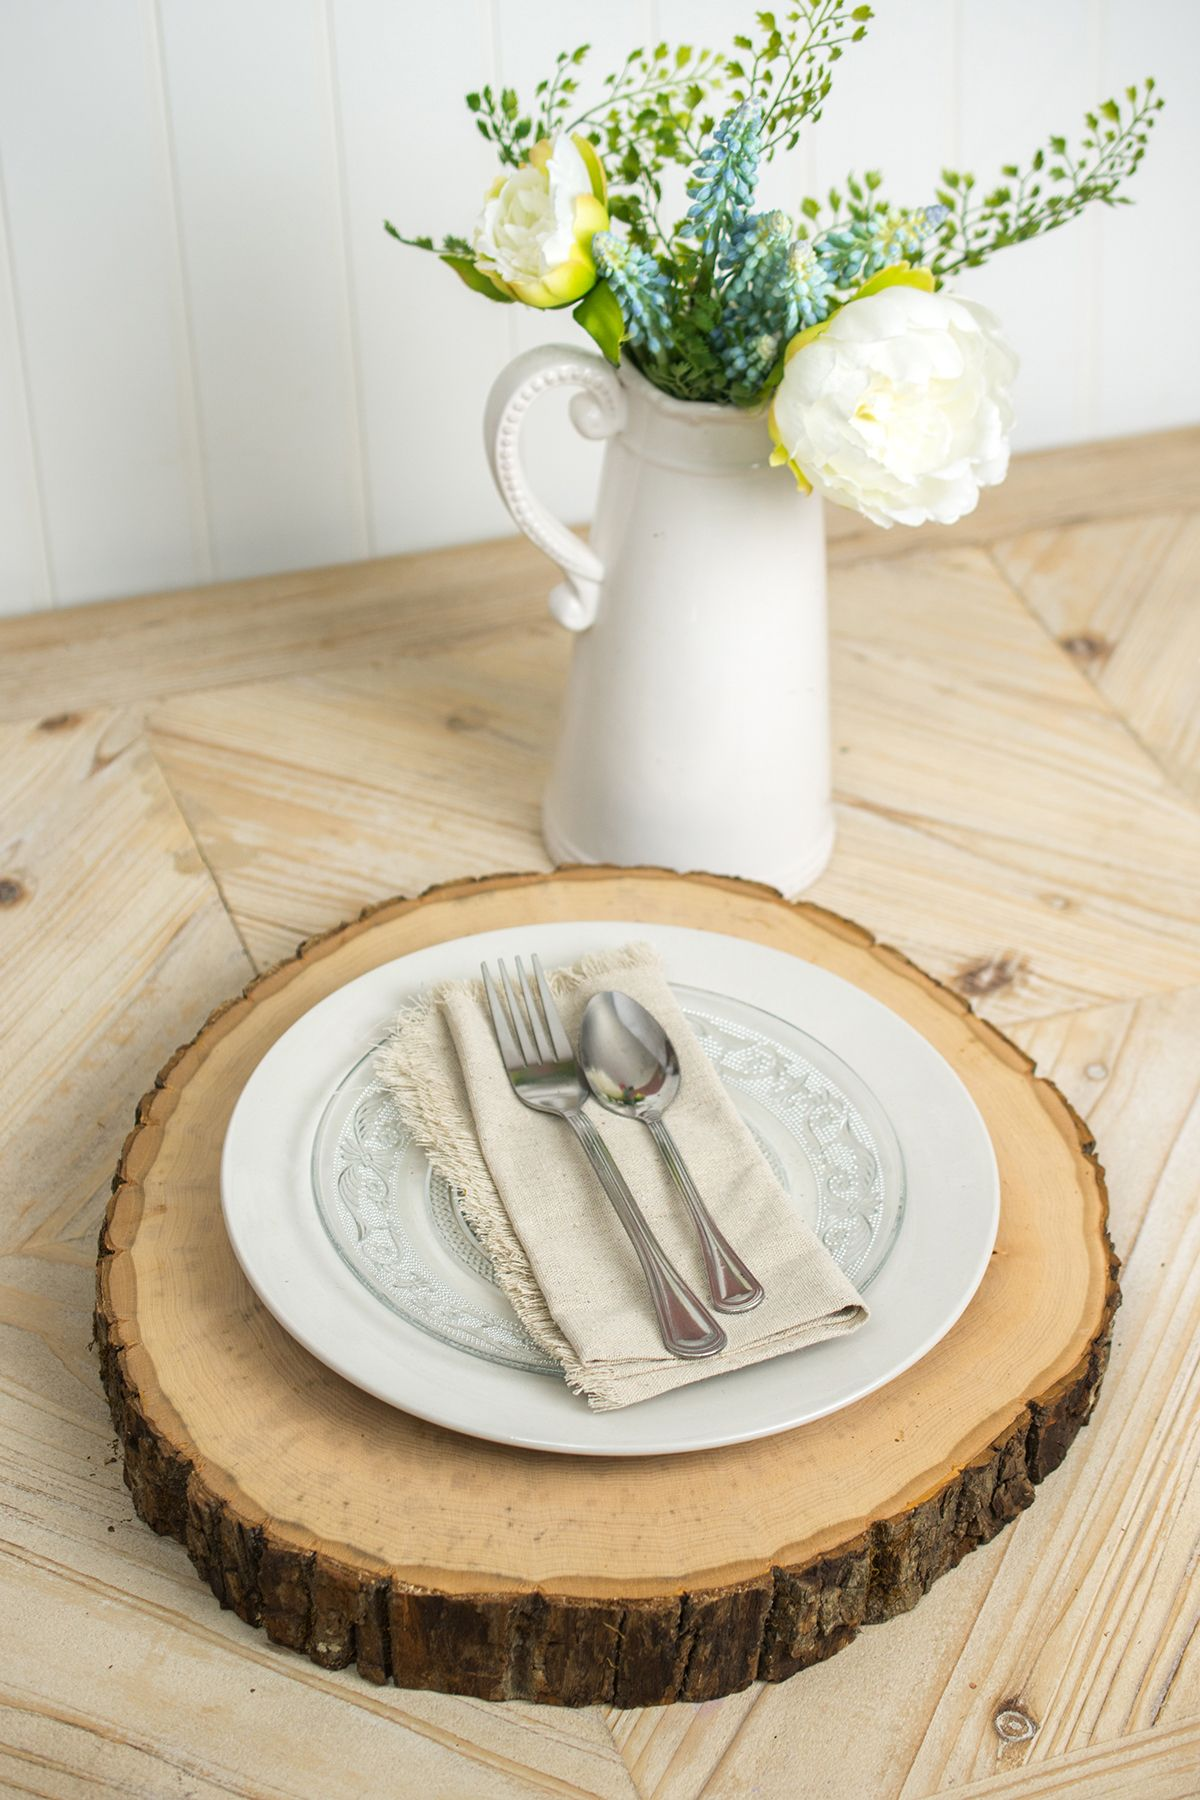 20pcs Natural Oval Wood Log Slices Chic Wedding Table Centerpiece Pyrography